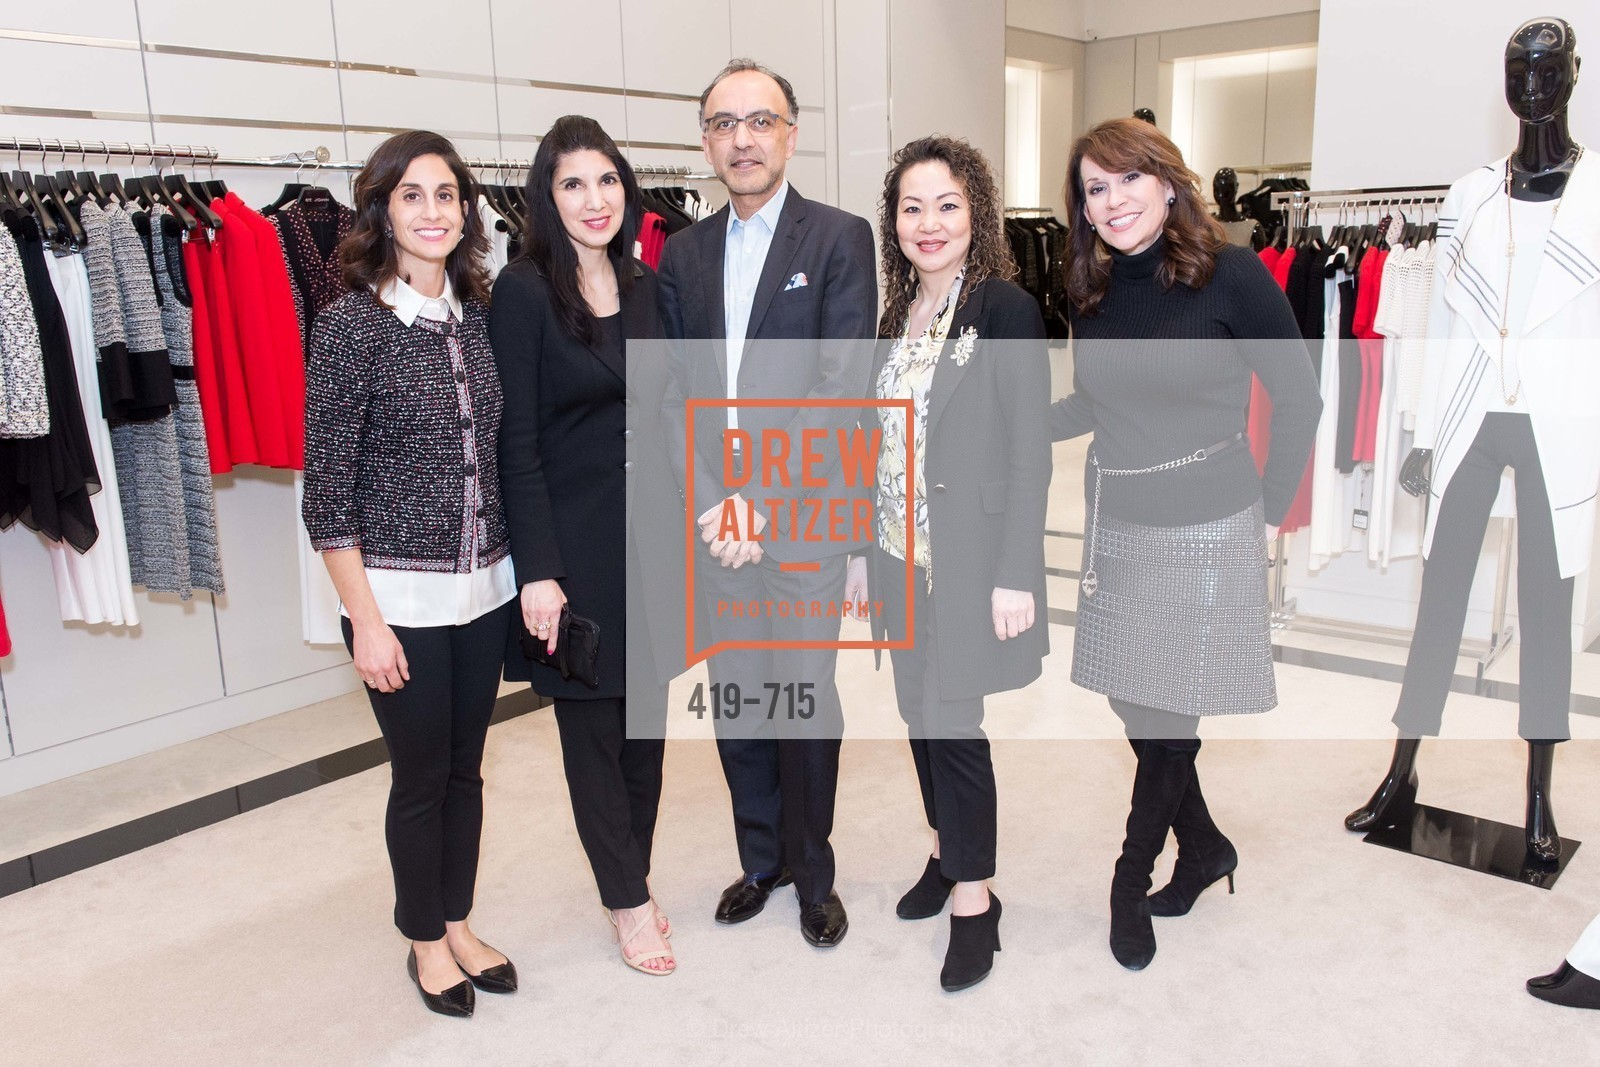 Jennifer Carrillo, Yoshabel Clements, Qais Abrahim, Katherine Cheng, Kate DeBernardi, The National Domestic Violence Hotline 20th Anniversary Gala Launch Party, St. John Boutique. 767 Market St, January 20th, 2016,Drew Altizer, Drew Altizer Photography, full-service agency, private events, San Francisco photographer, photographer california